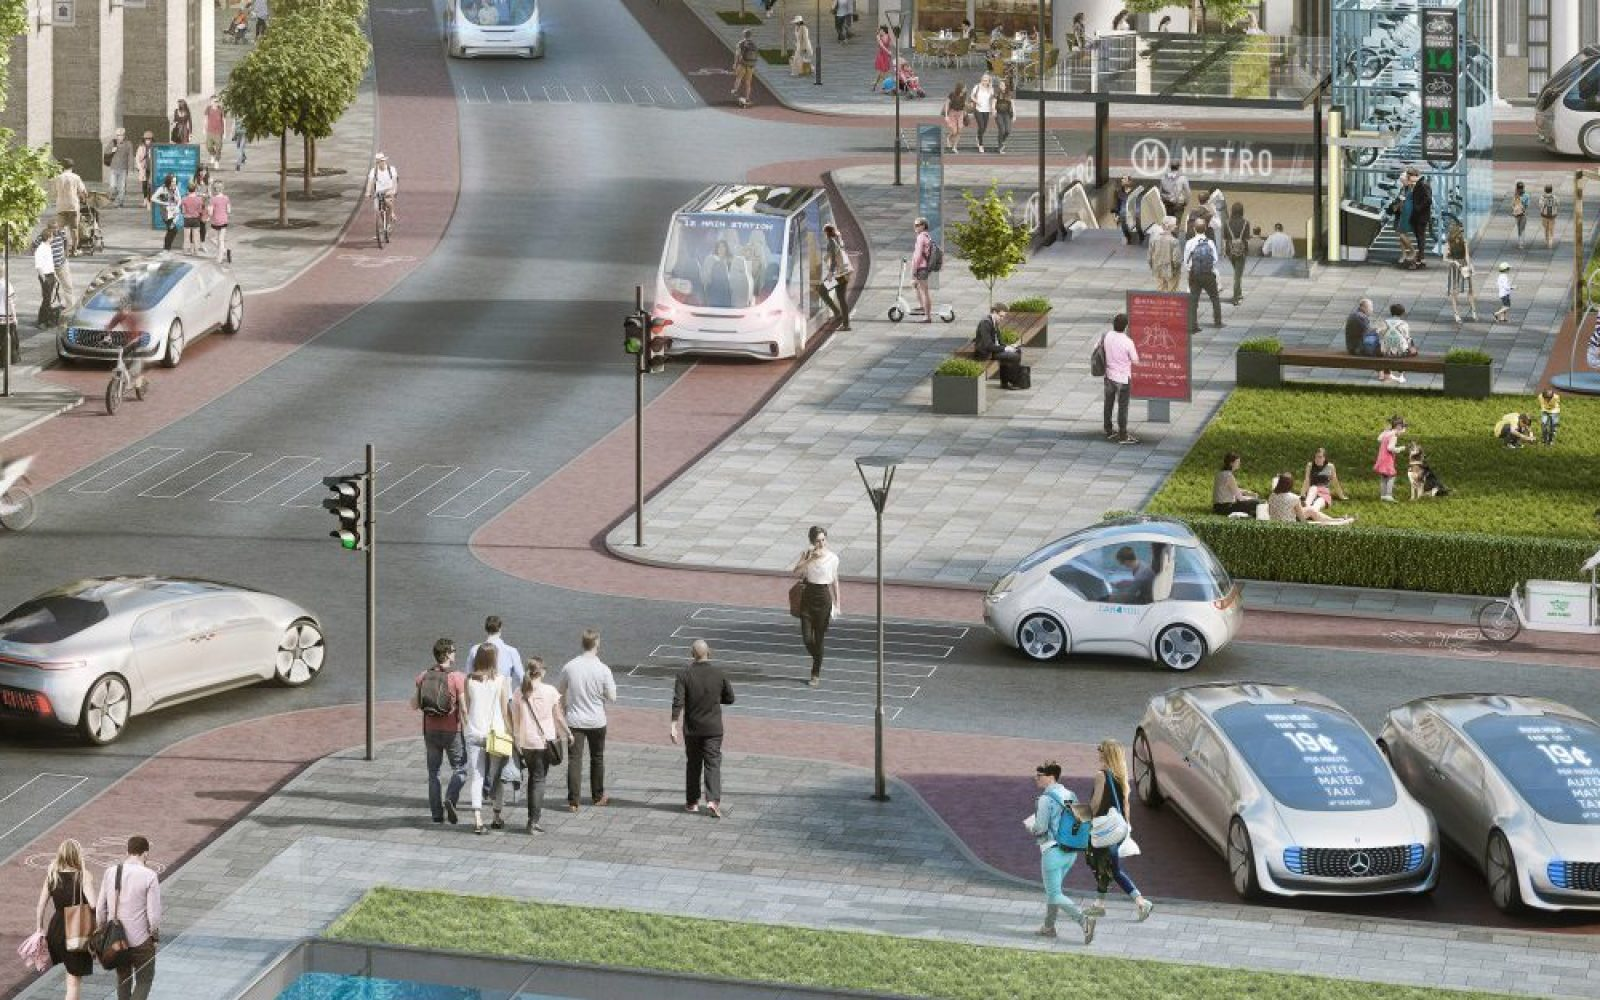 Daimler and Bosch join forces to build level 4 and 5 autonomous driving systems